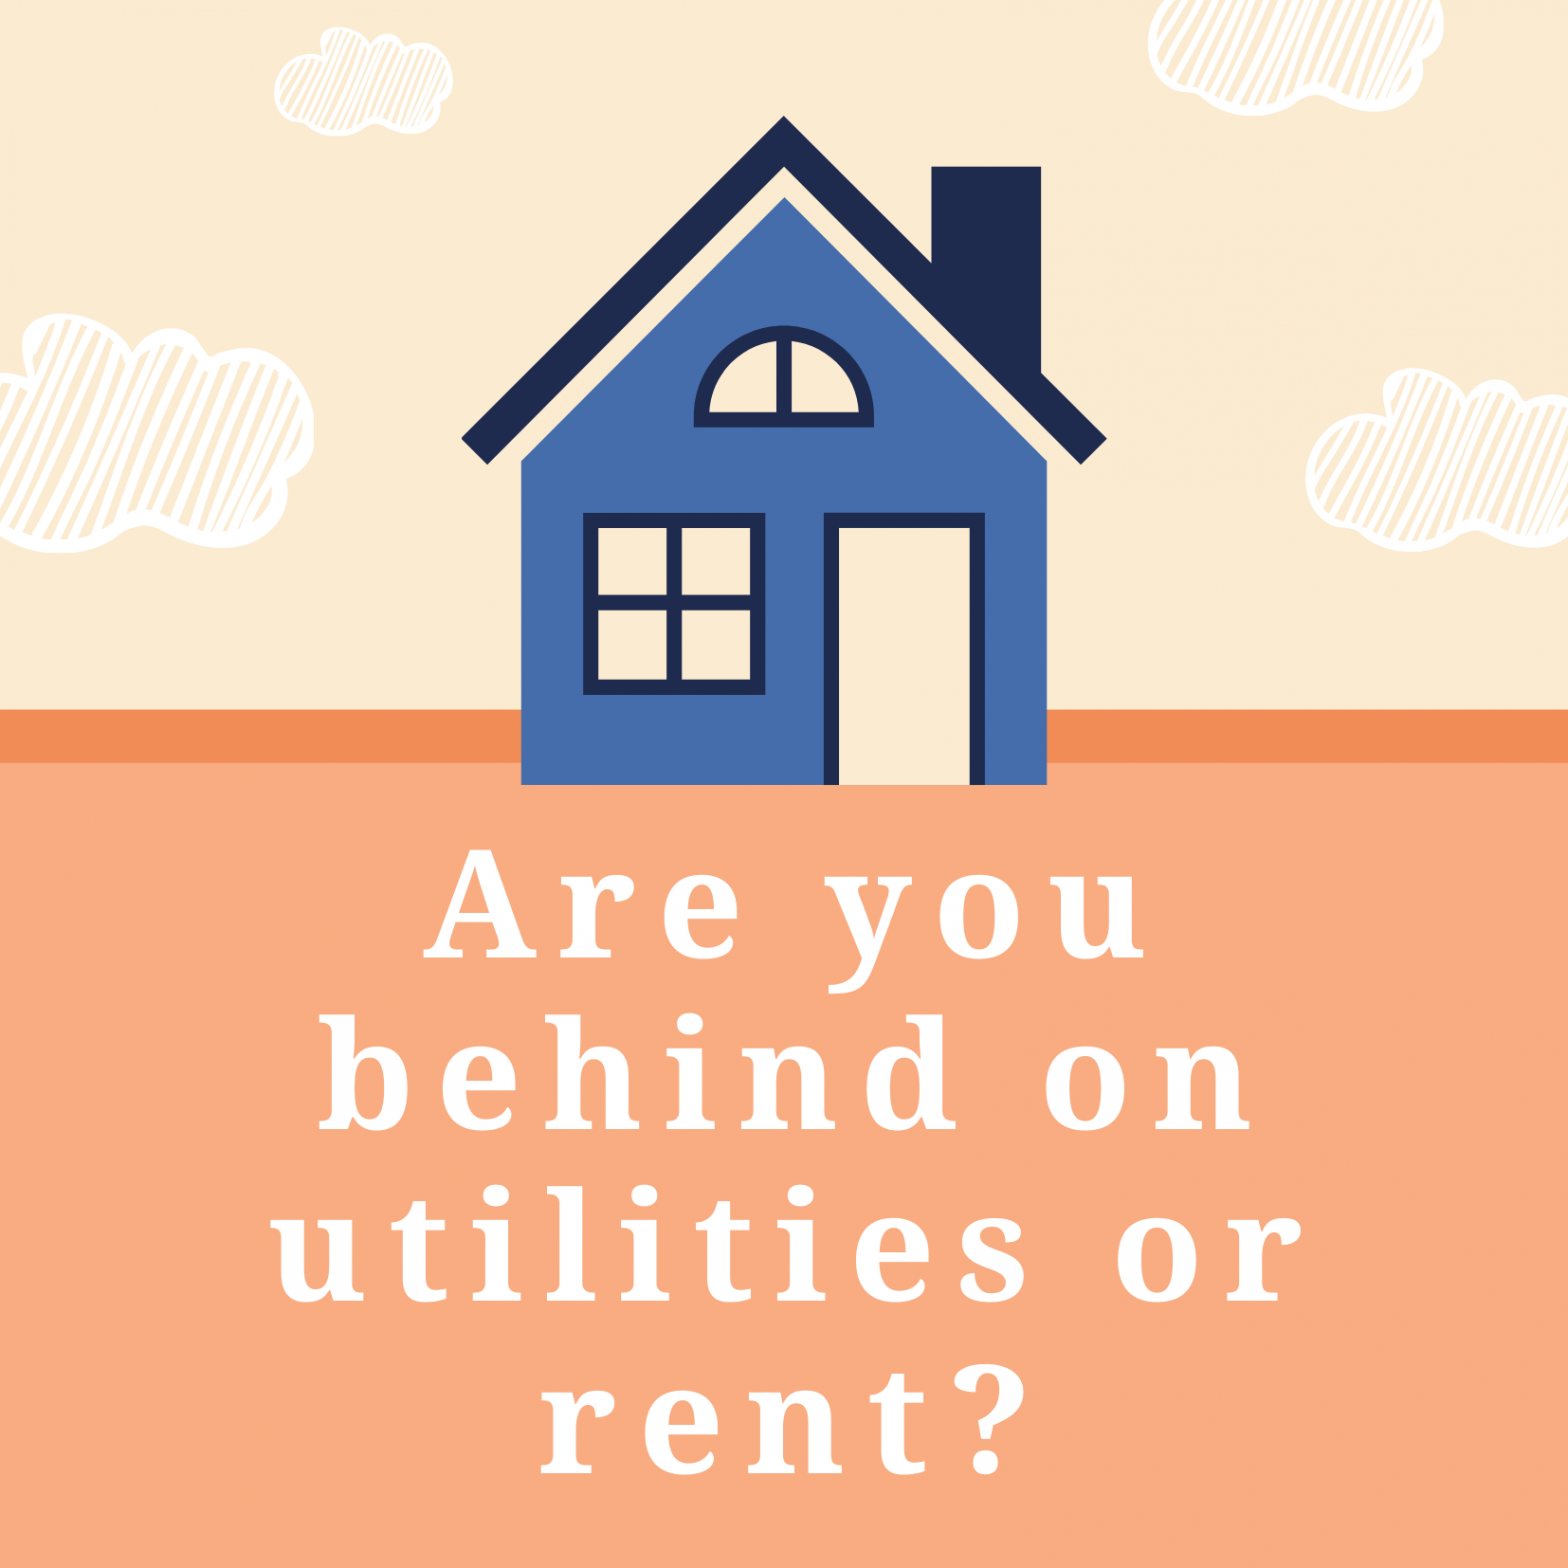 are you behind on utilities or rent